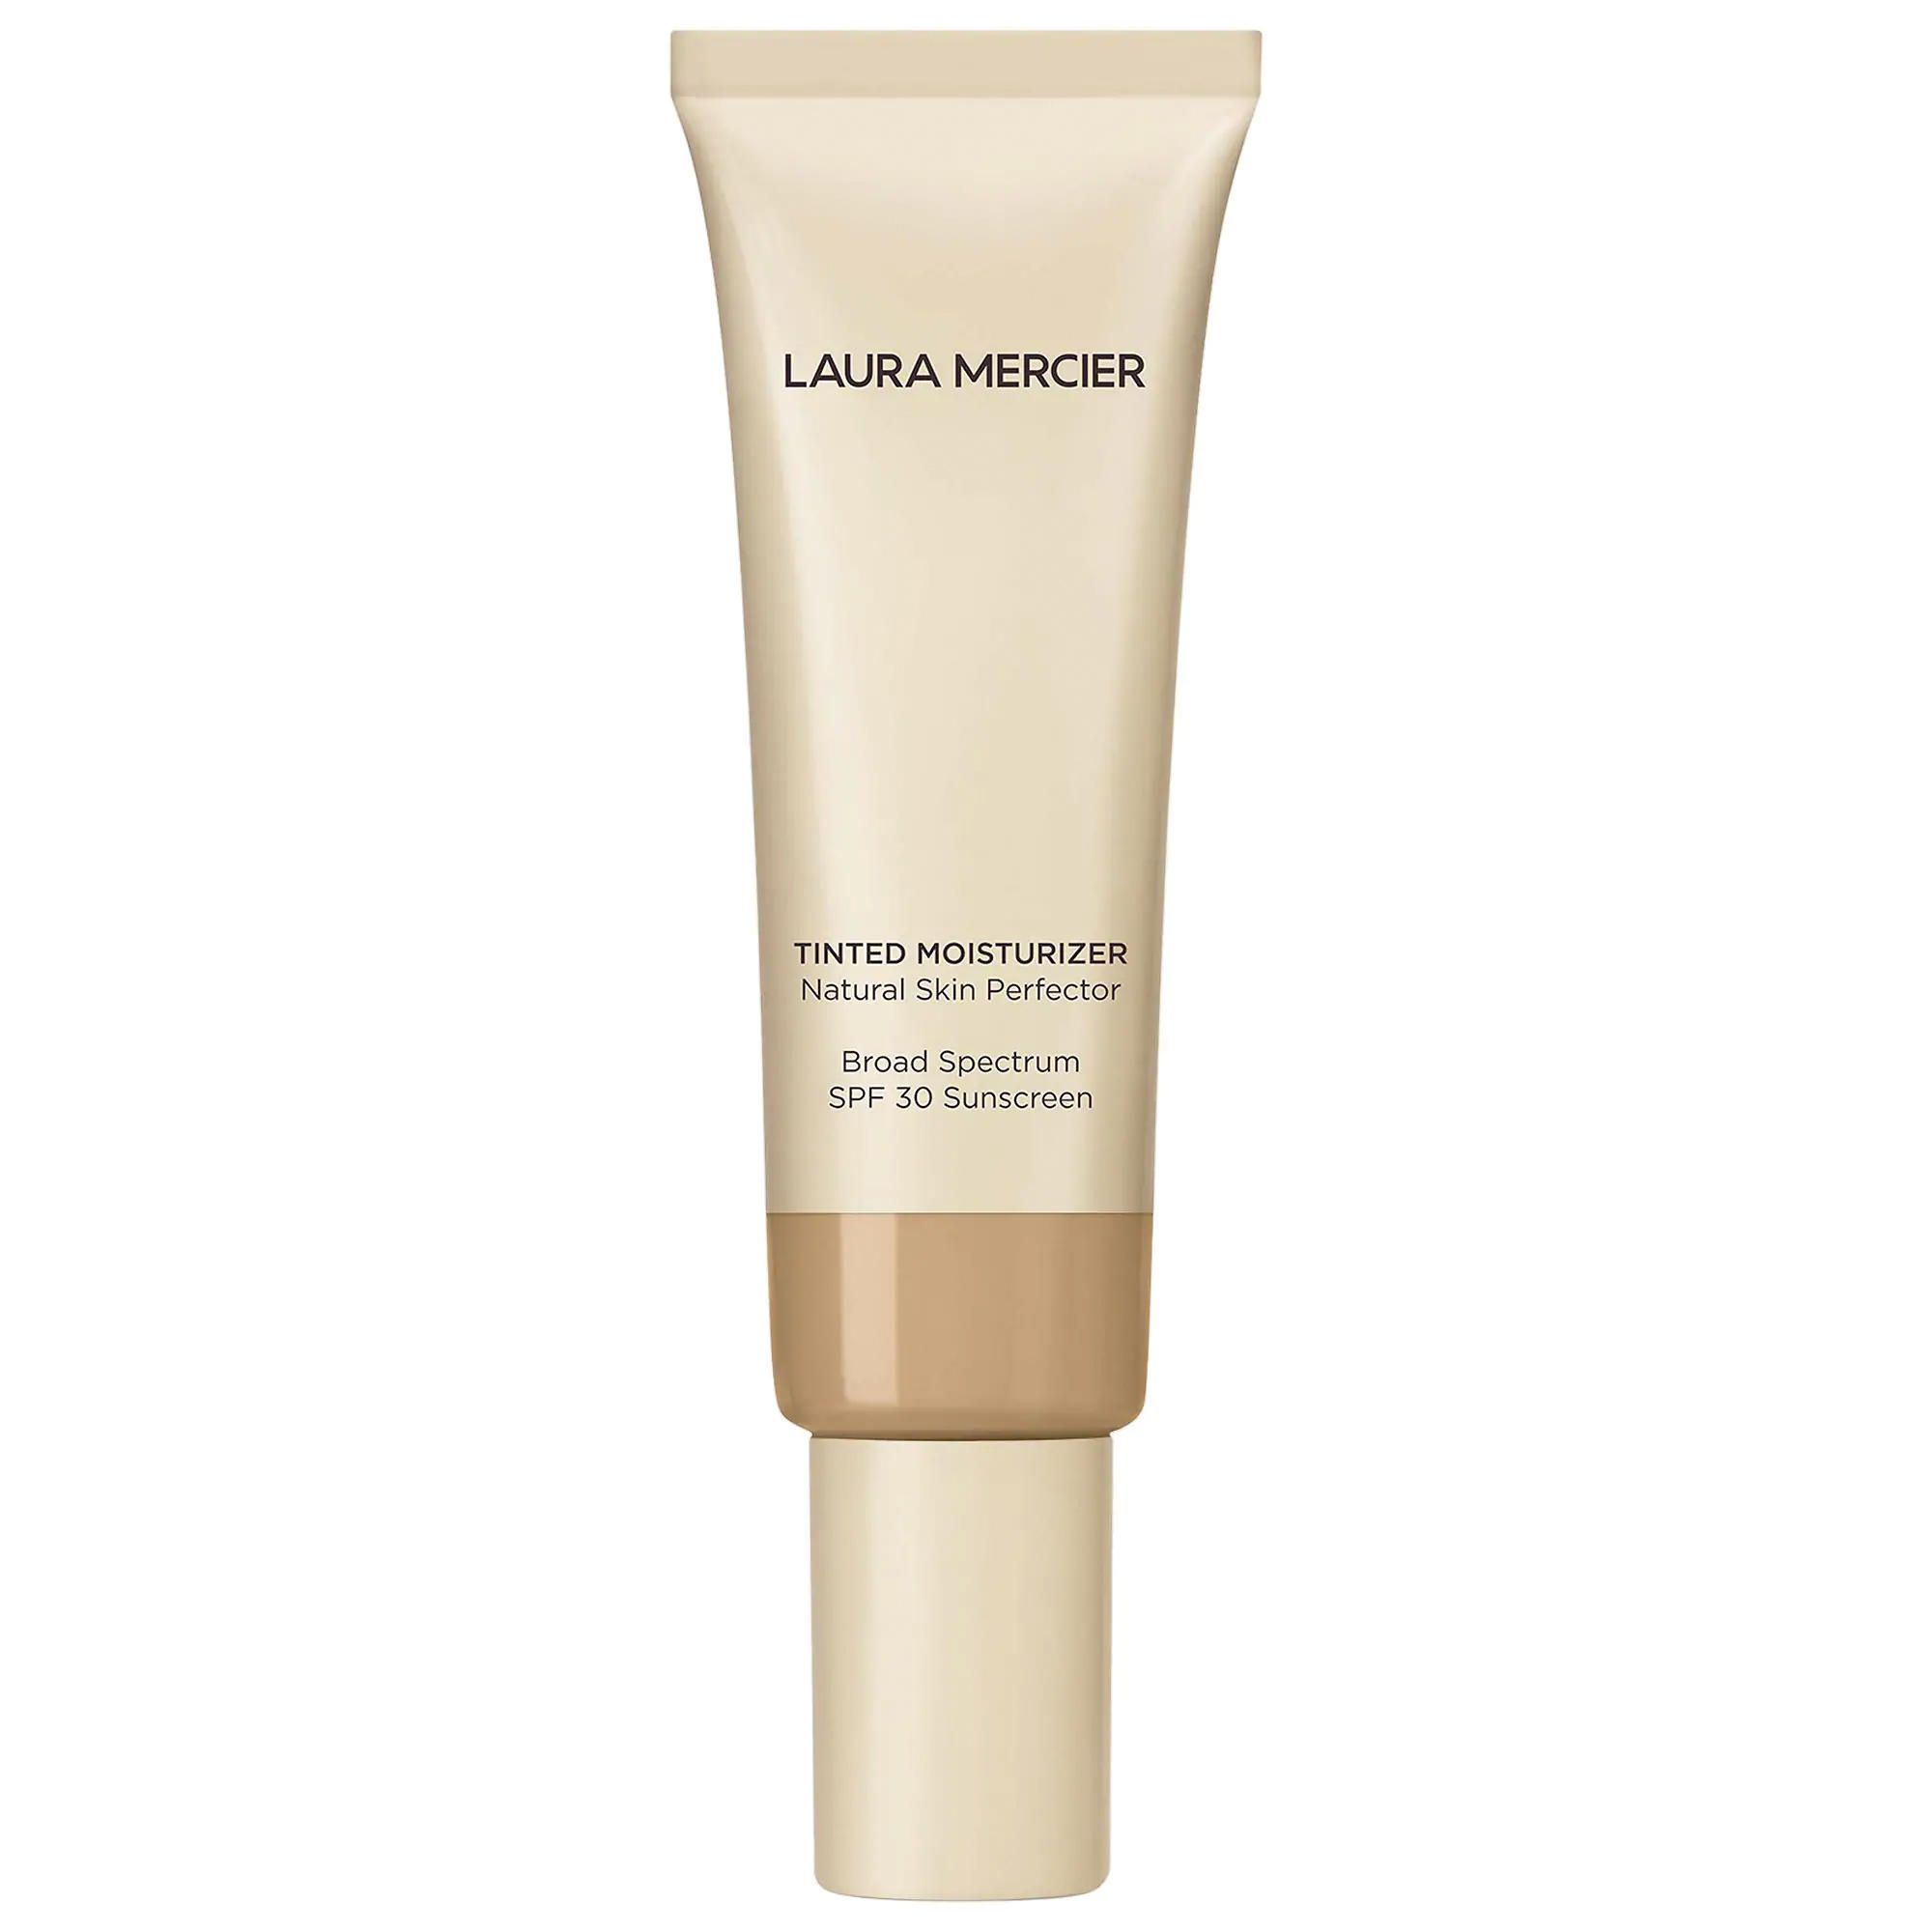 Laura Mercier Tinted Moisturizer Natural Skin Perfector Fawn 3C1